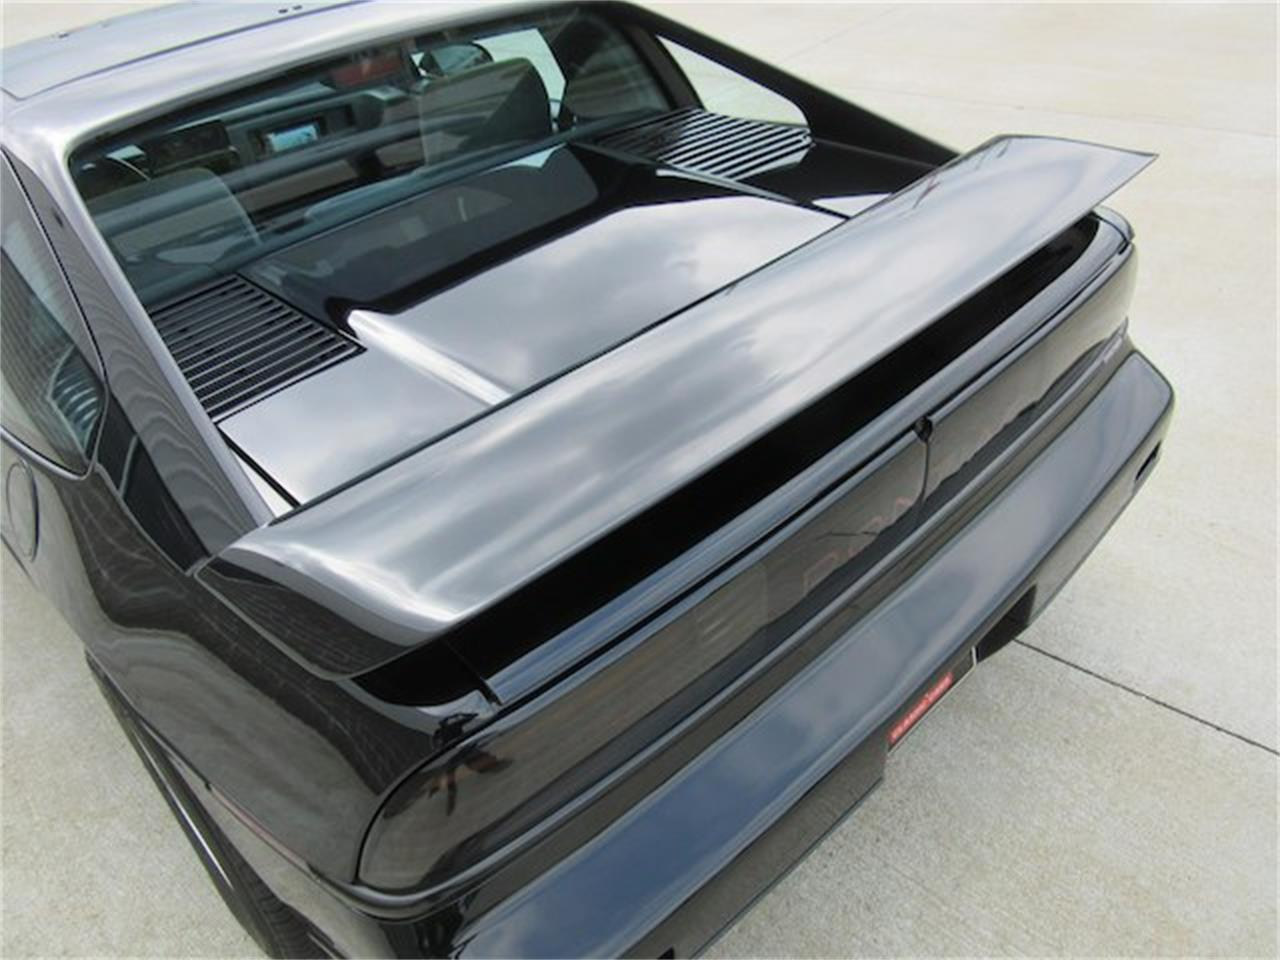 Large Picture of '88 Pontiac Fiero - $15,900.00 - NVQQ